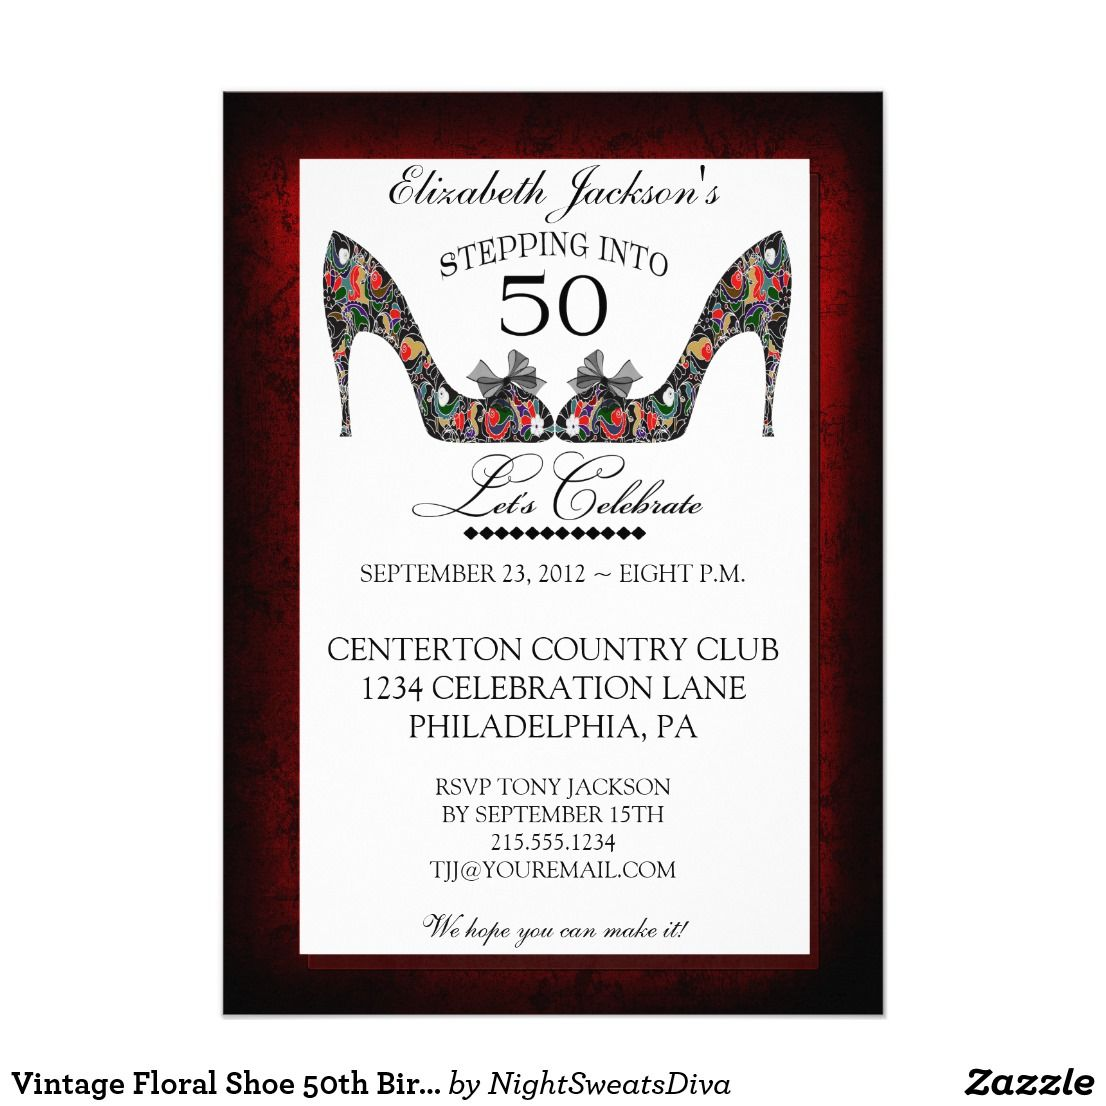 Vintage Floral Shoe 50th Birthday Invitation | Floral, 50th birthday ...